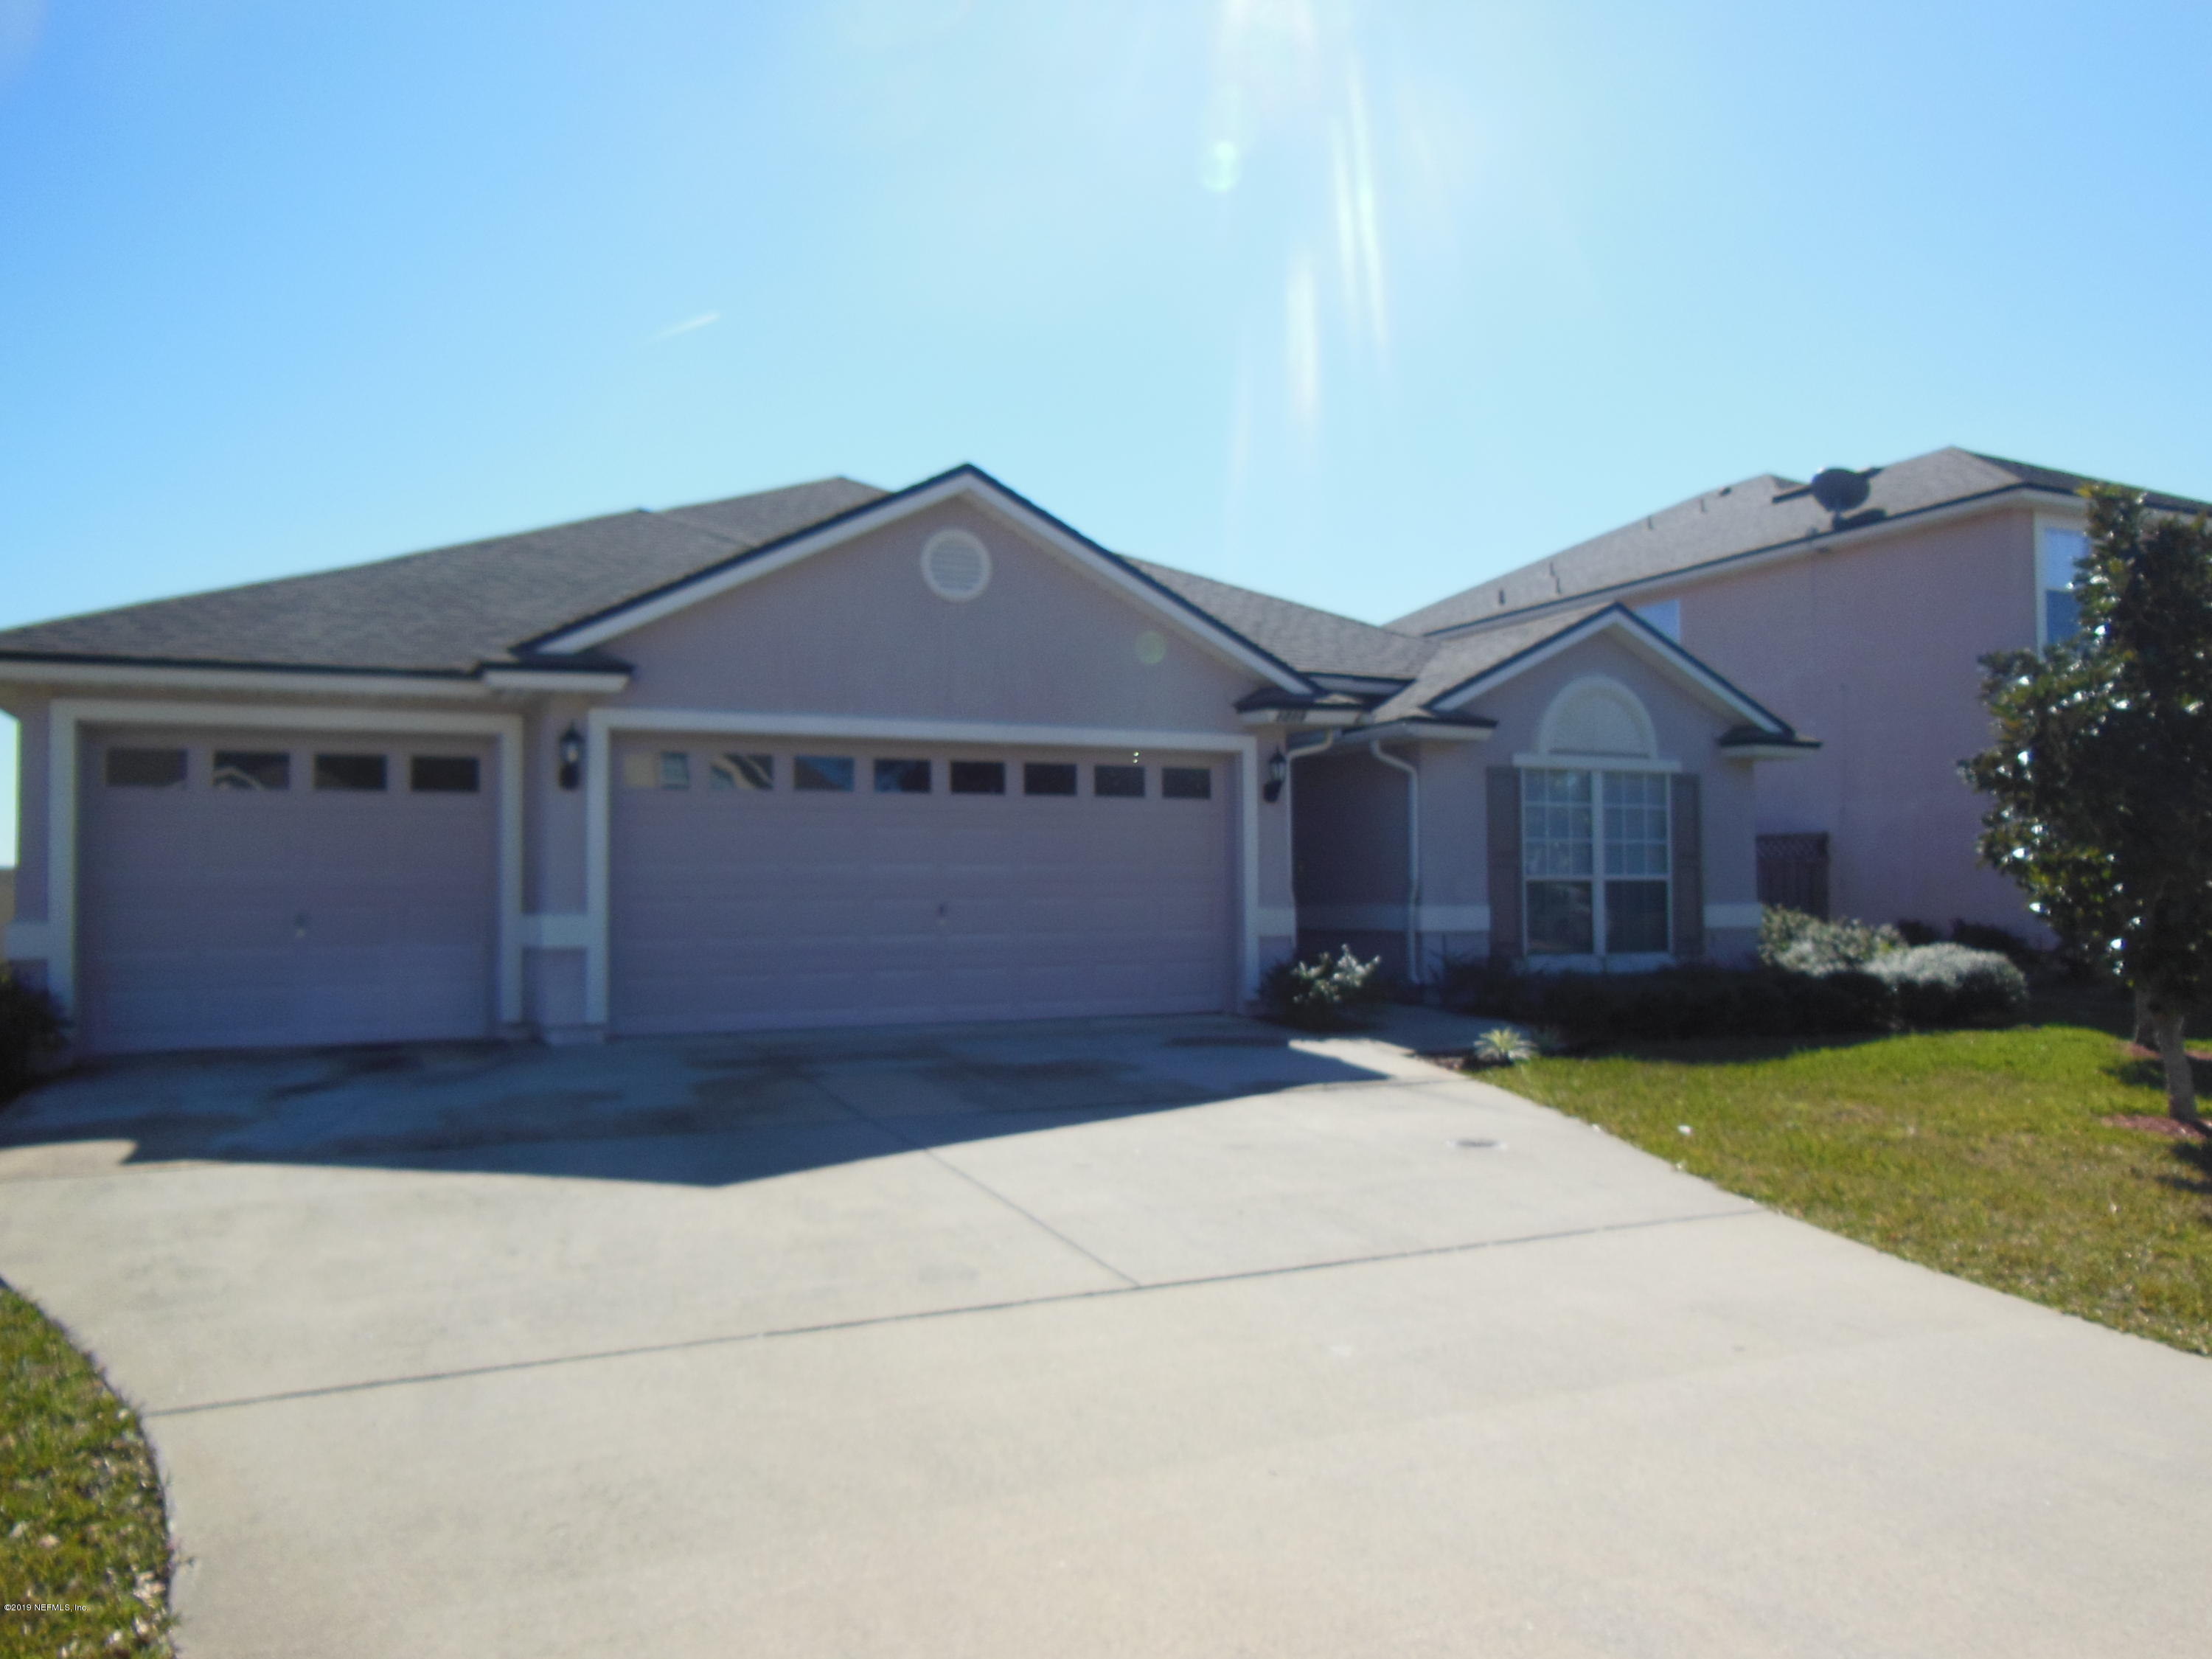 1213 SPRINGHEALTH, ST AUGUSTINE, FLORIDA 32092, 4 Bedrooms Bedrooms, ,3 BathroomsBathrooms,Residential - single family,For sale,SPRINGHEALTH,993552